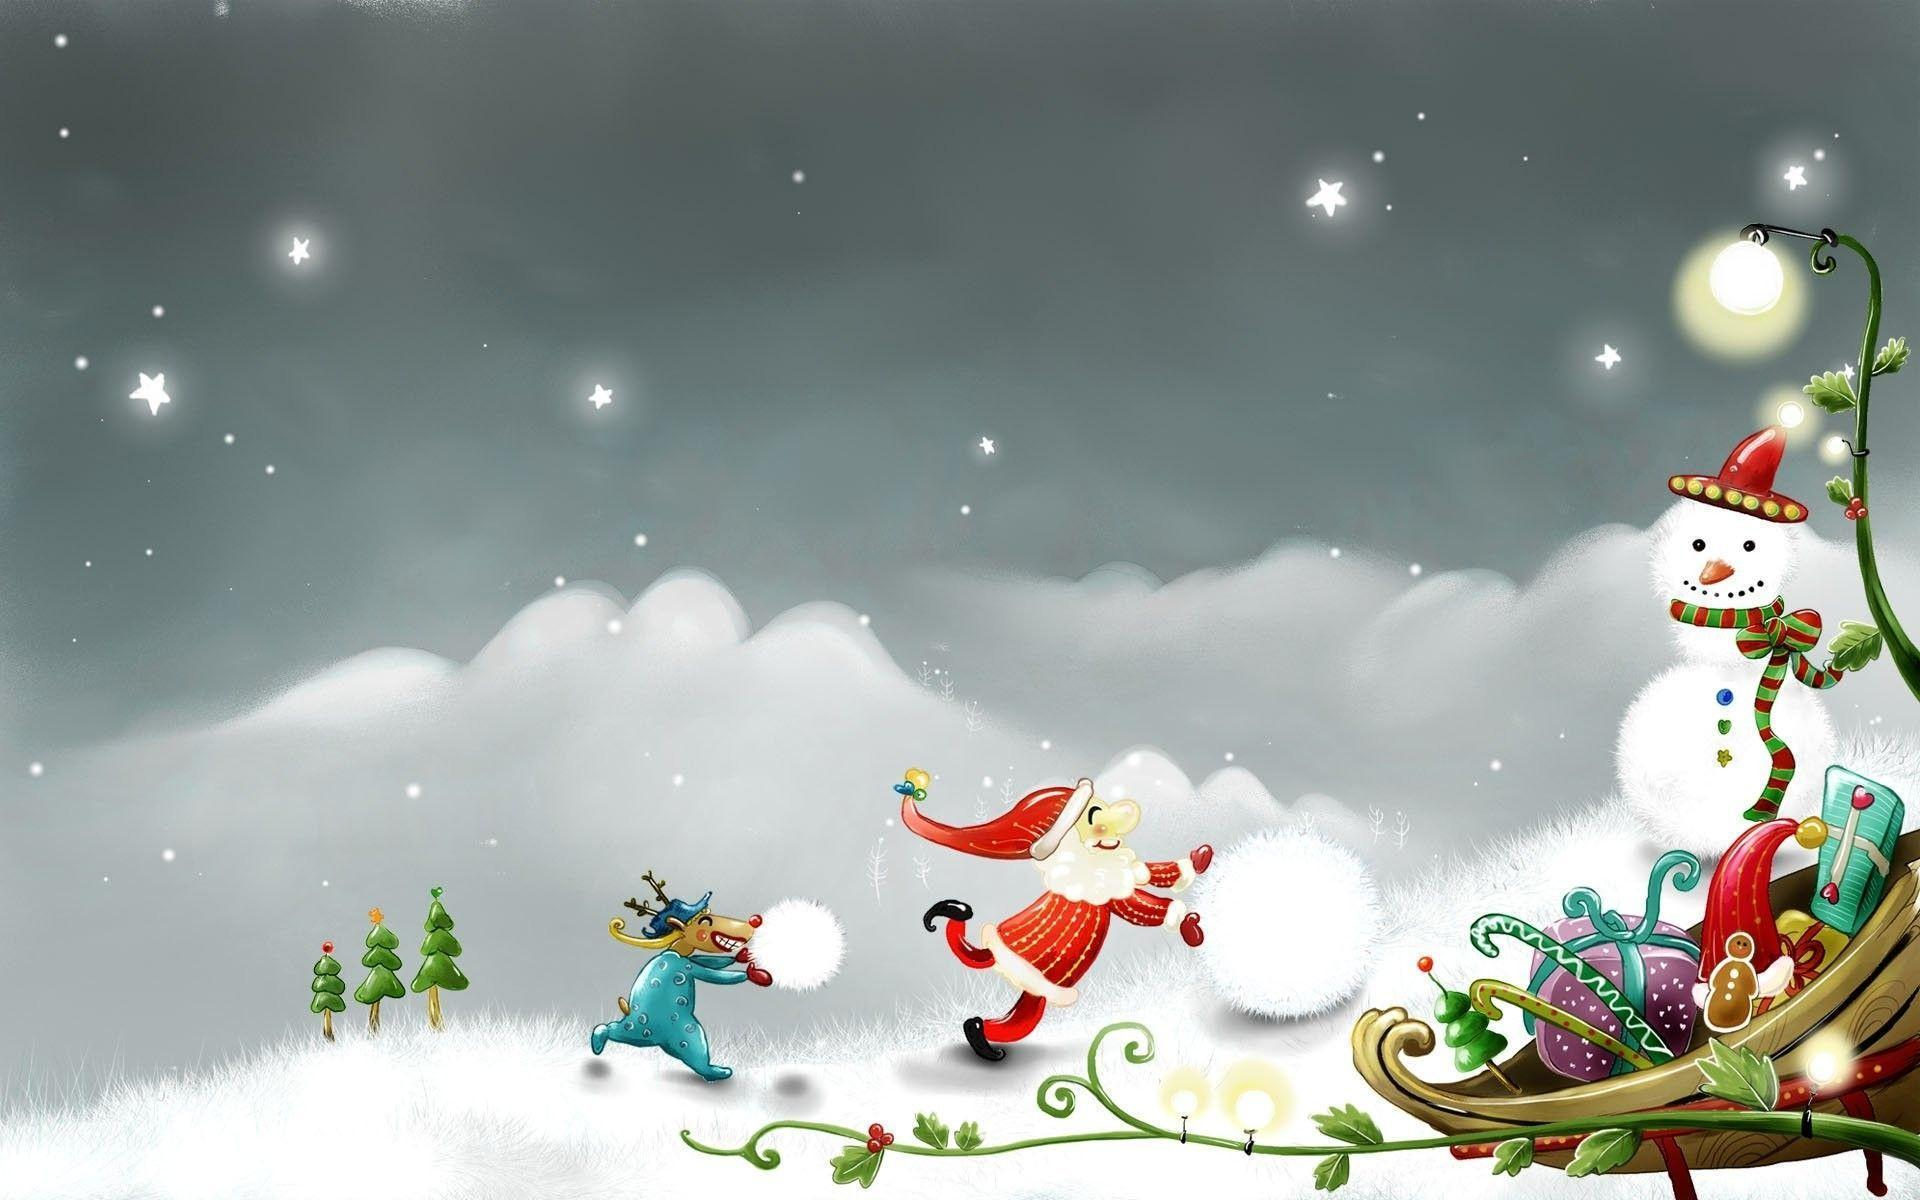 Animated Christmas Wallpapers  Full HD wallpaper search